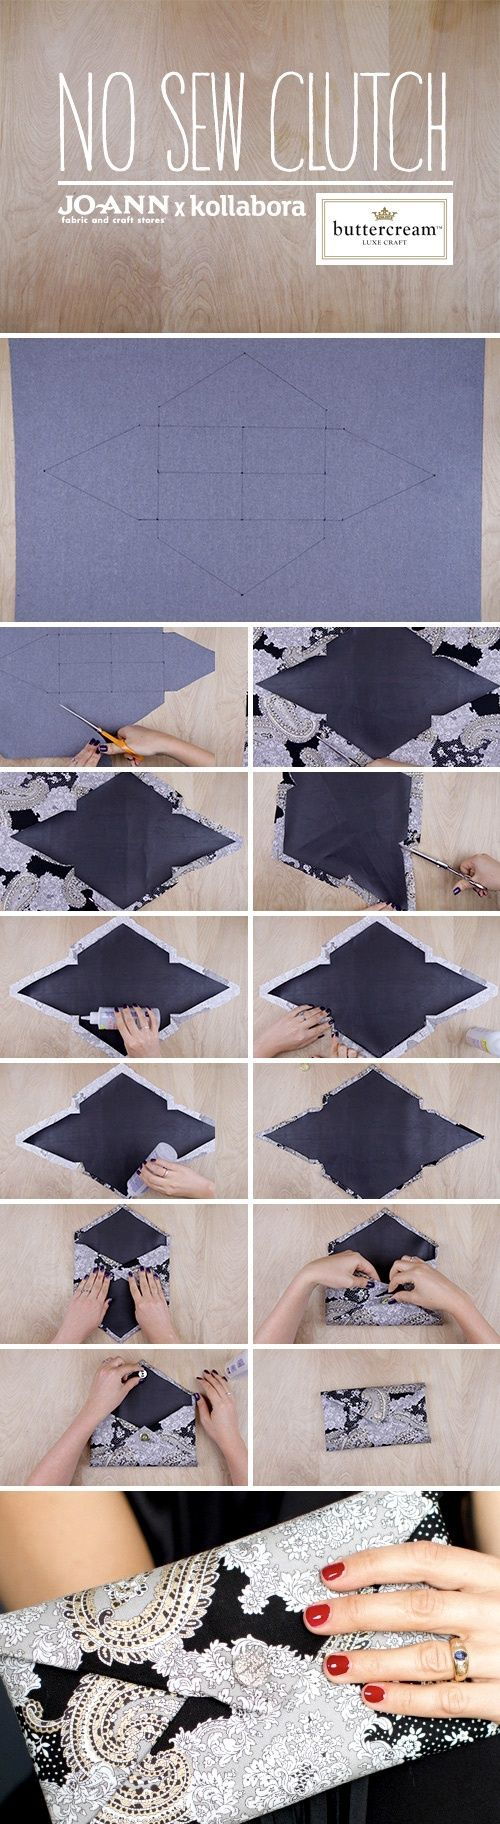 17 Best ideas about Diy Clutch on Pinterest | Diy purse, Diy bags ...